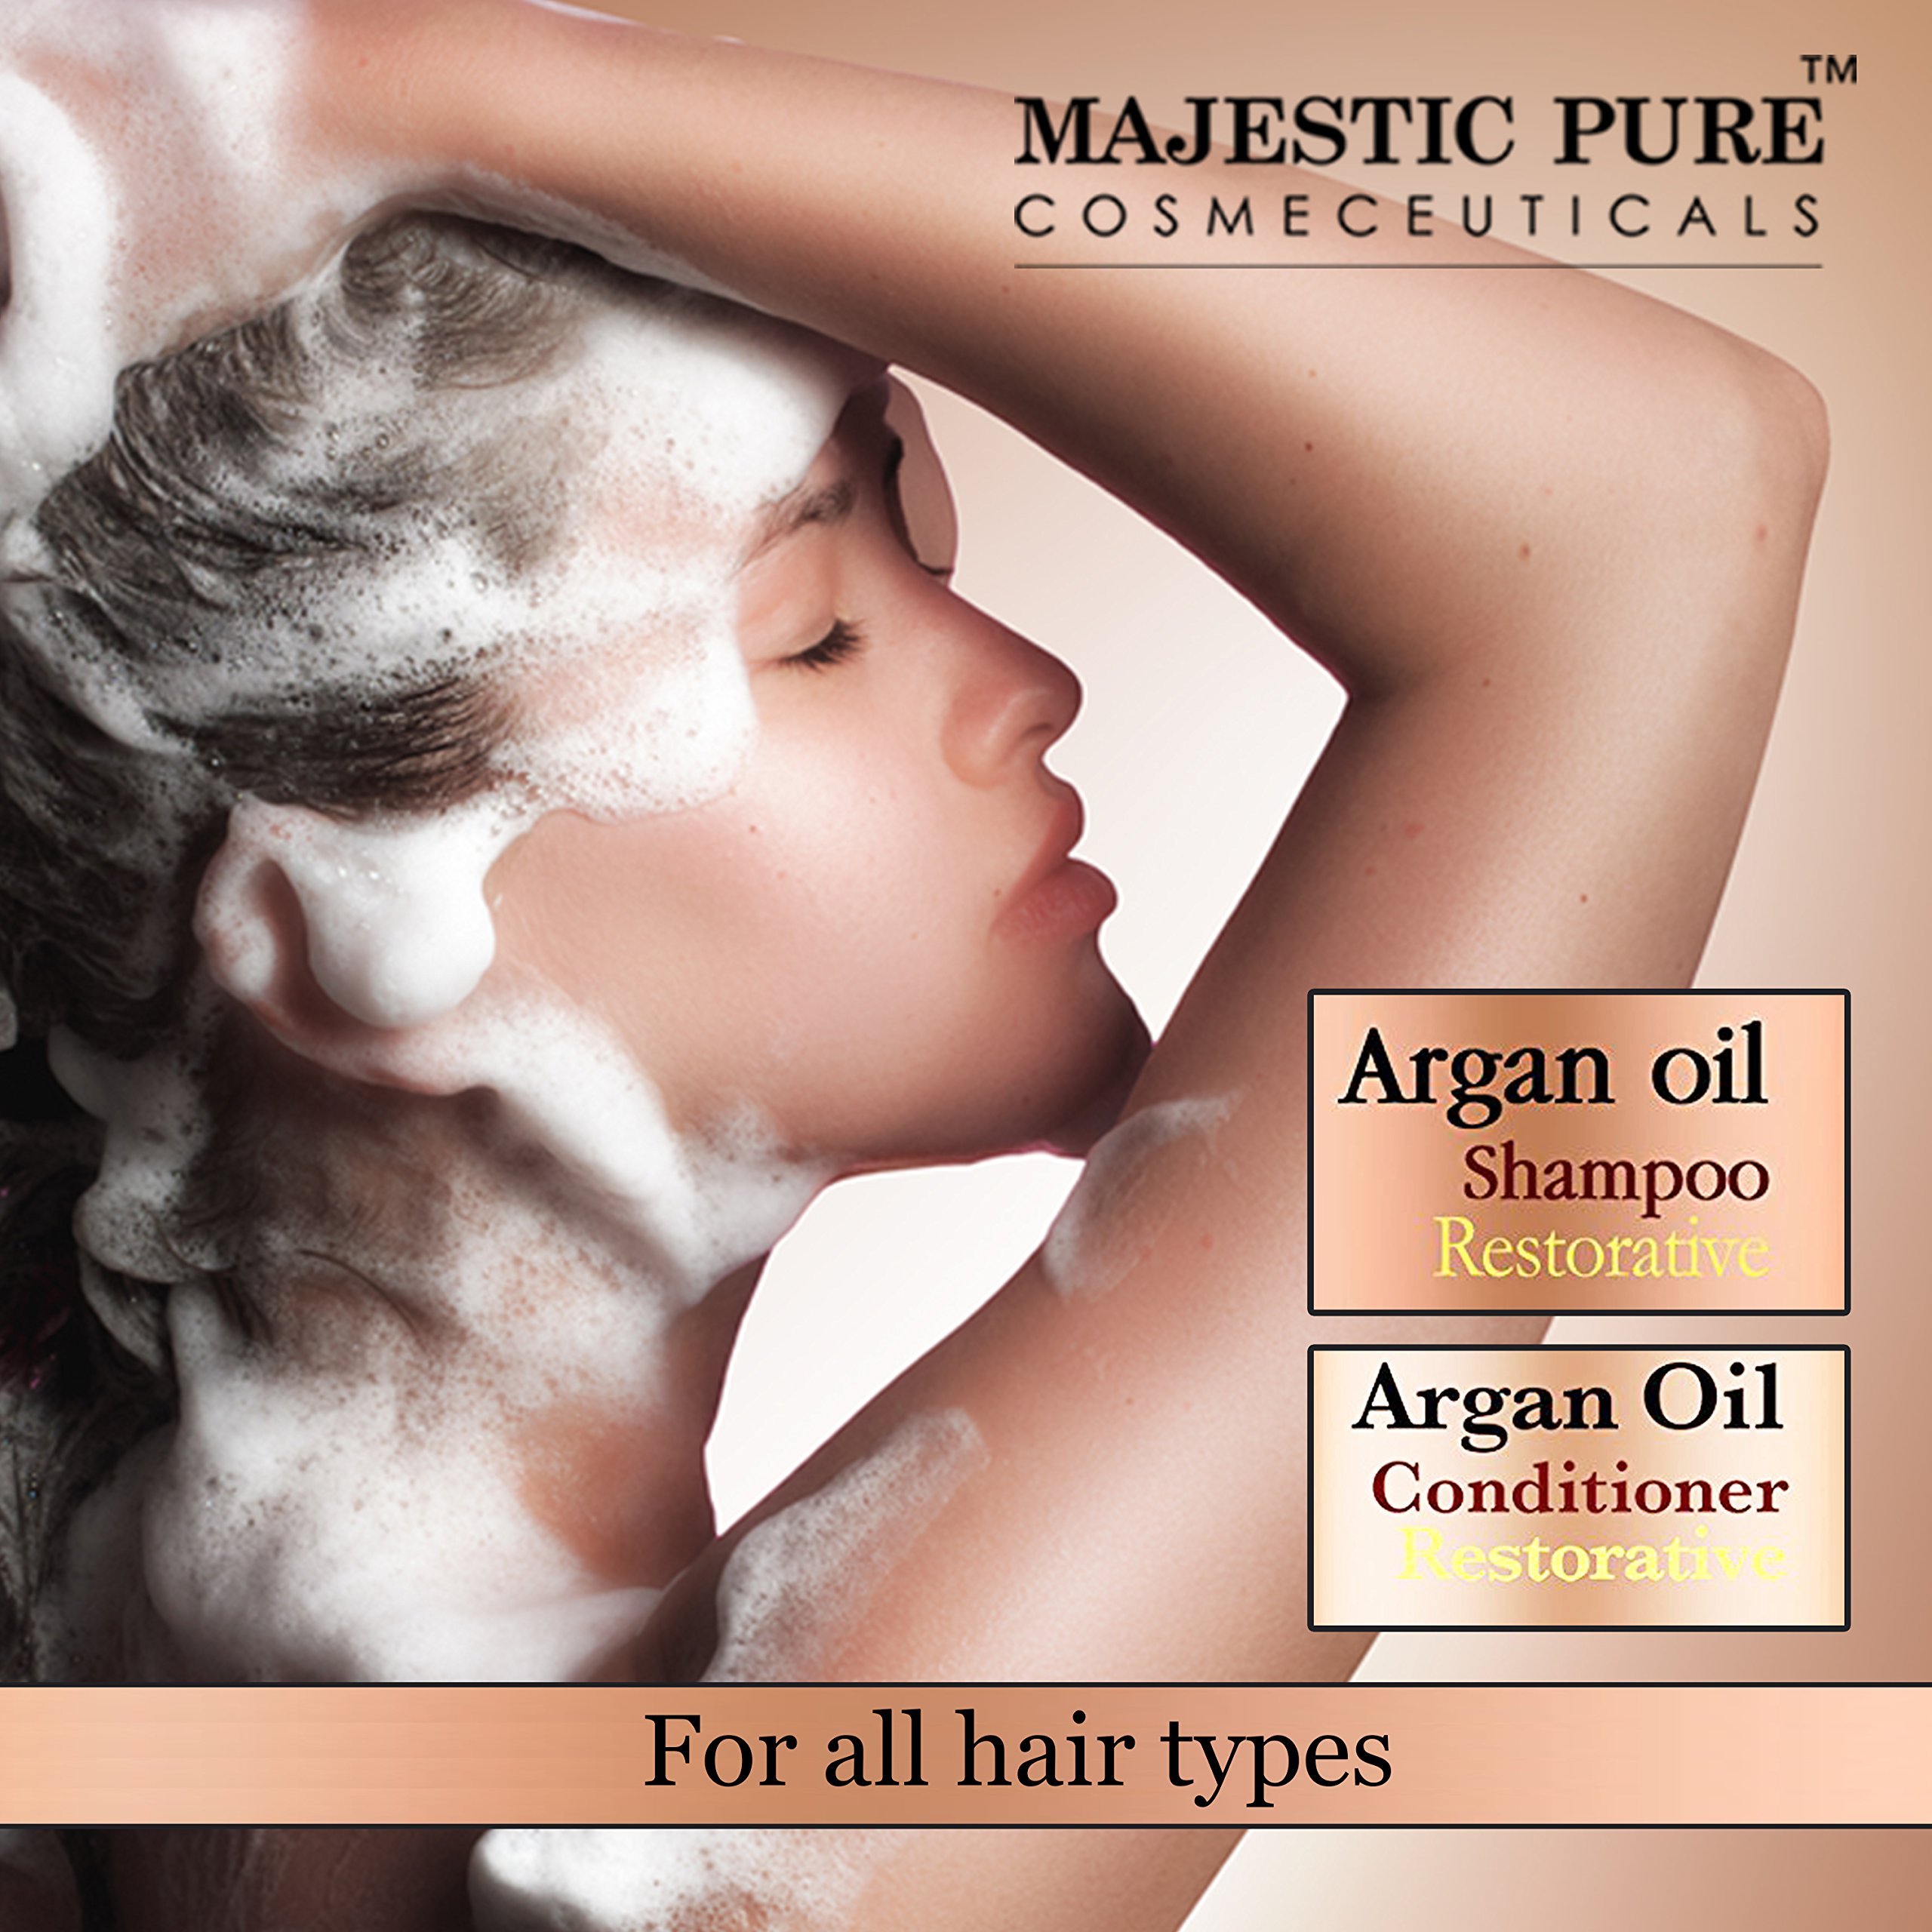 Argan Oil Shampoo and Conditioner, from Majestic Pure, Sulfate Free, Vitamin Enriched, Volumizing & Gentle Hair Restoration Formula for Daily Use, For Men and Women, 16 fl oz each … by Majestic Pure (Image #3)